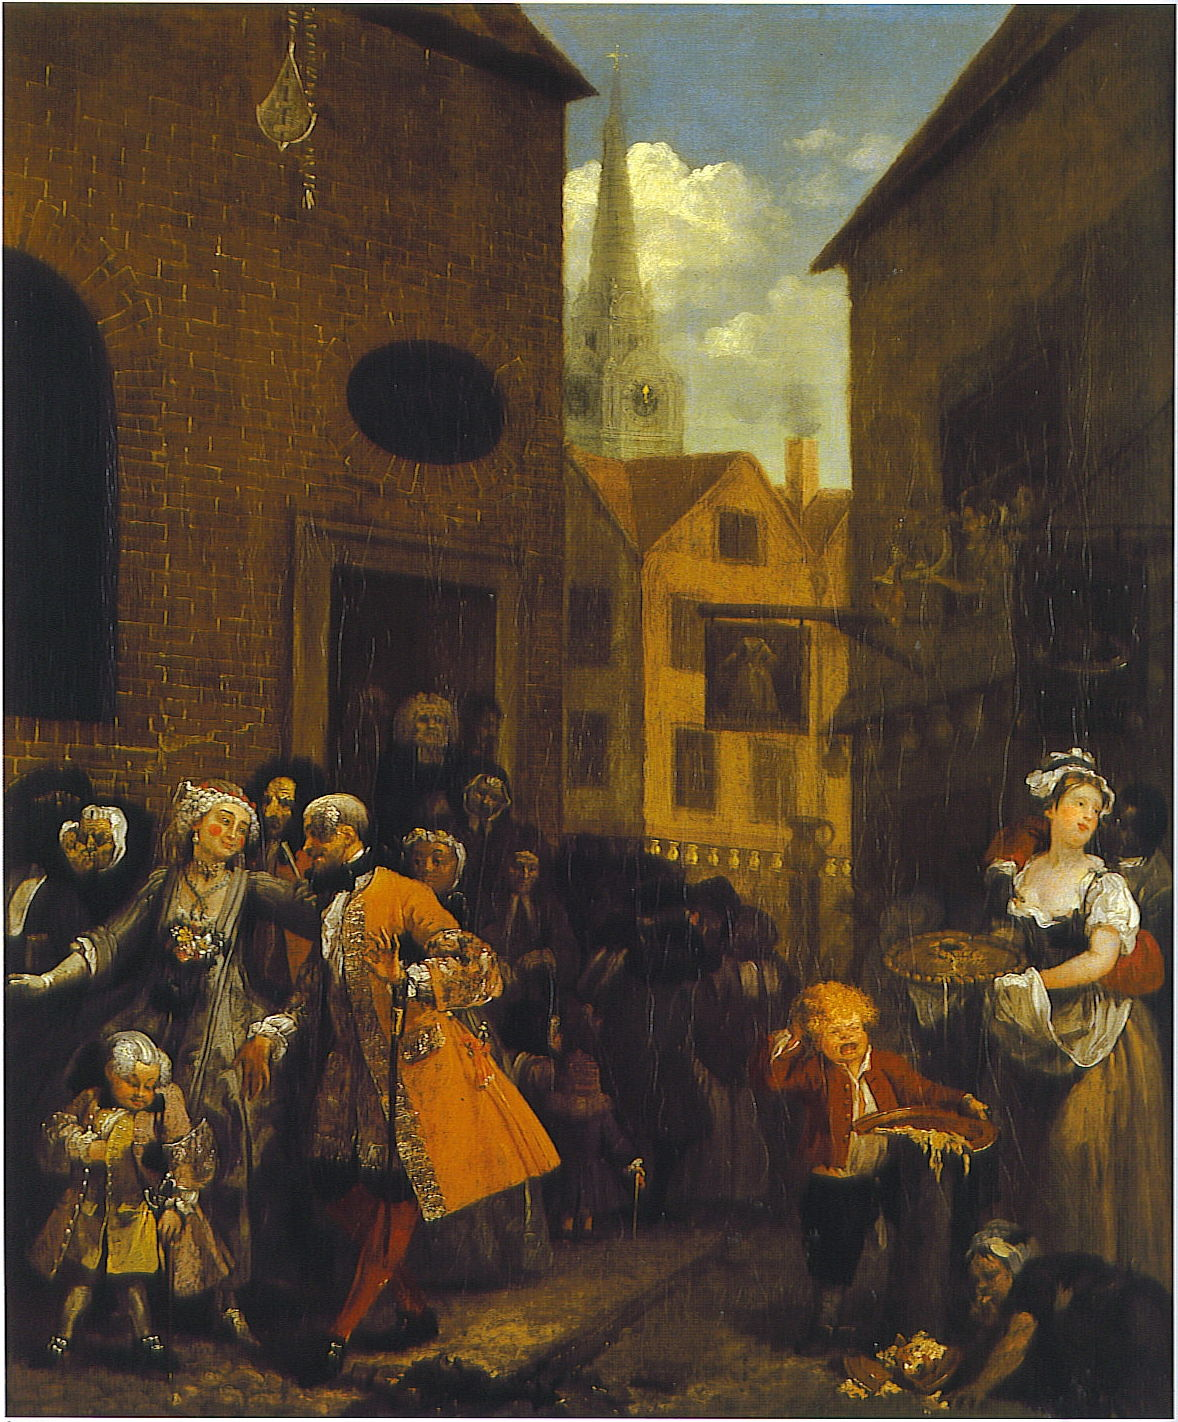 The story in paintings painting to the music of time for William hogarth was noted for painting